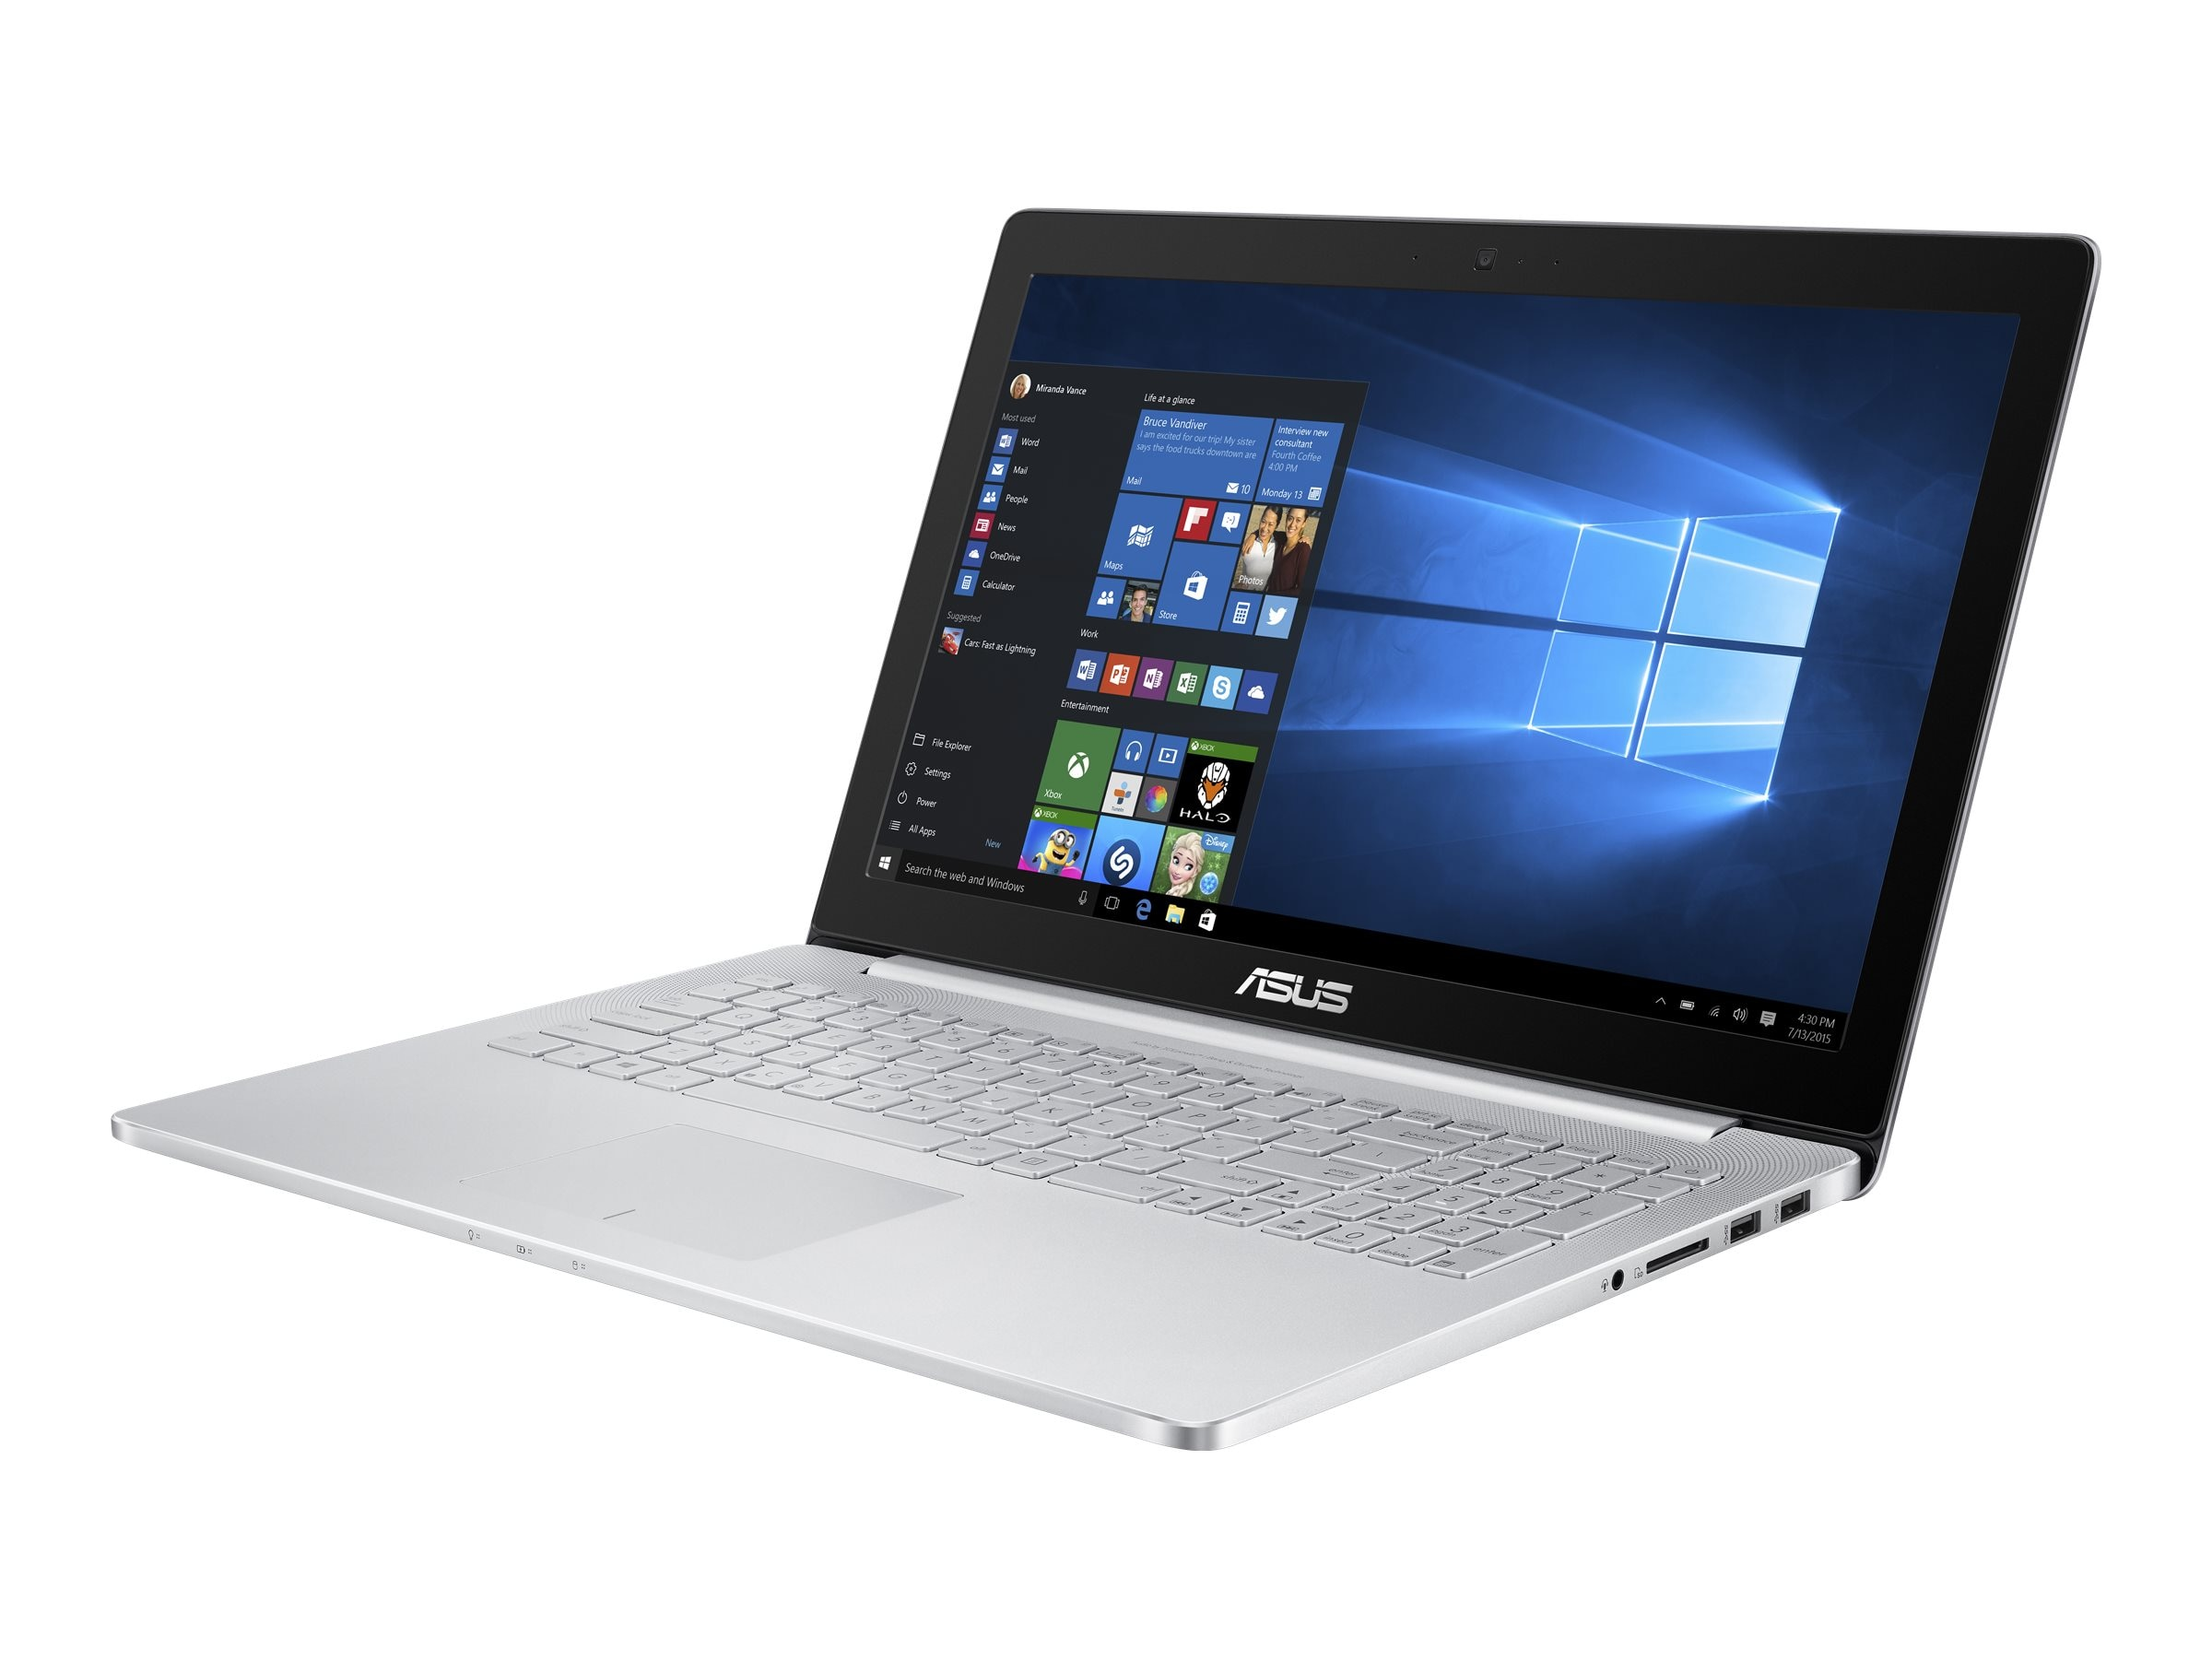 Asus Zenbook Pro Core i7 2.6GHz 16GB 512GB SSD 960M 15.6 4K MT W10H64